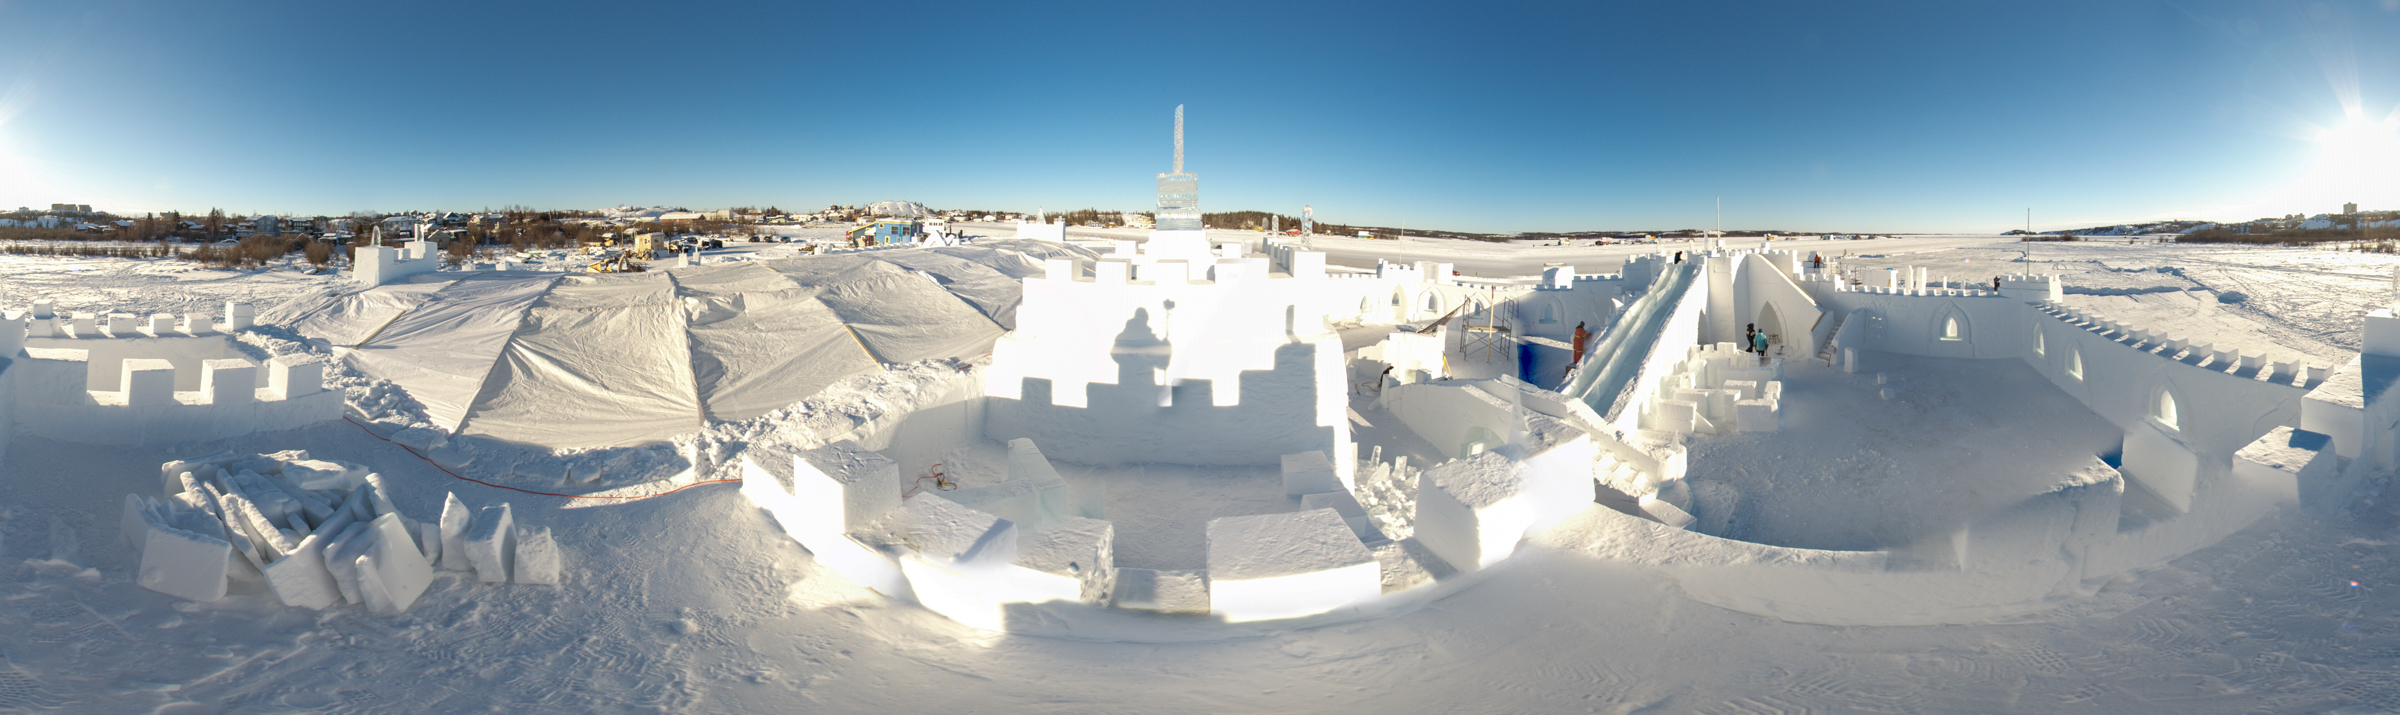 Yellowknife snowking